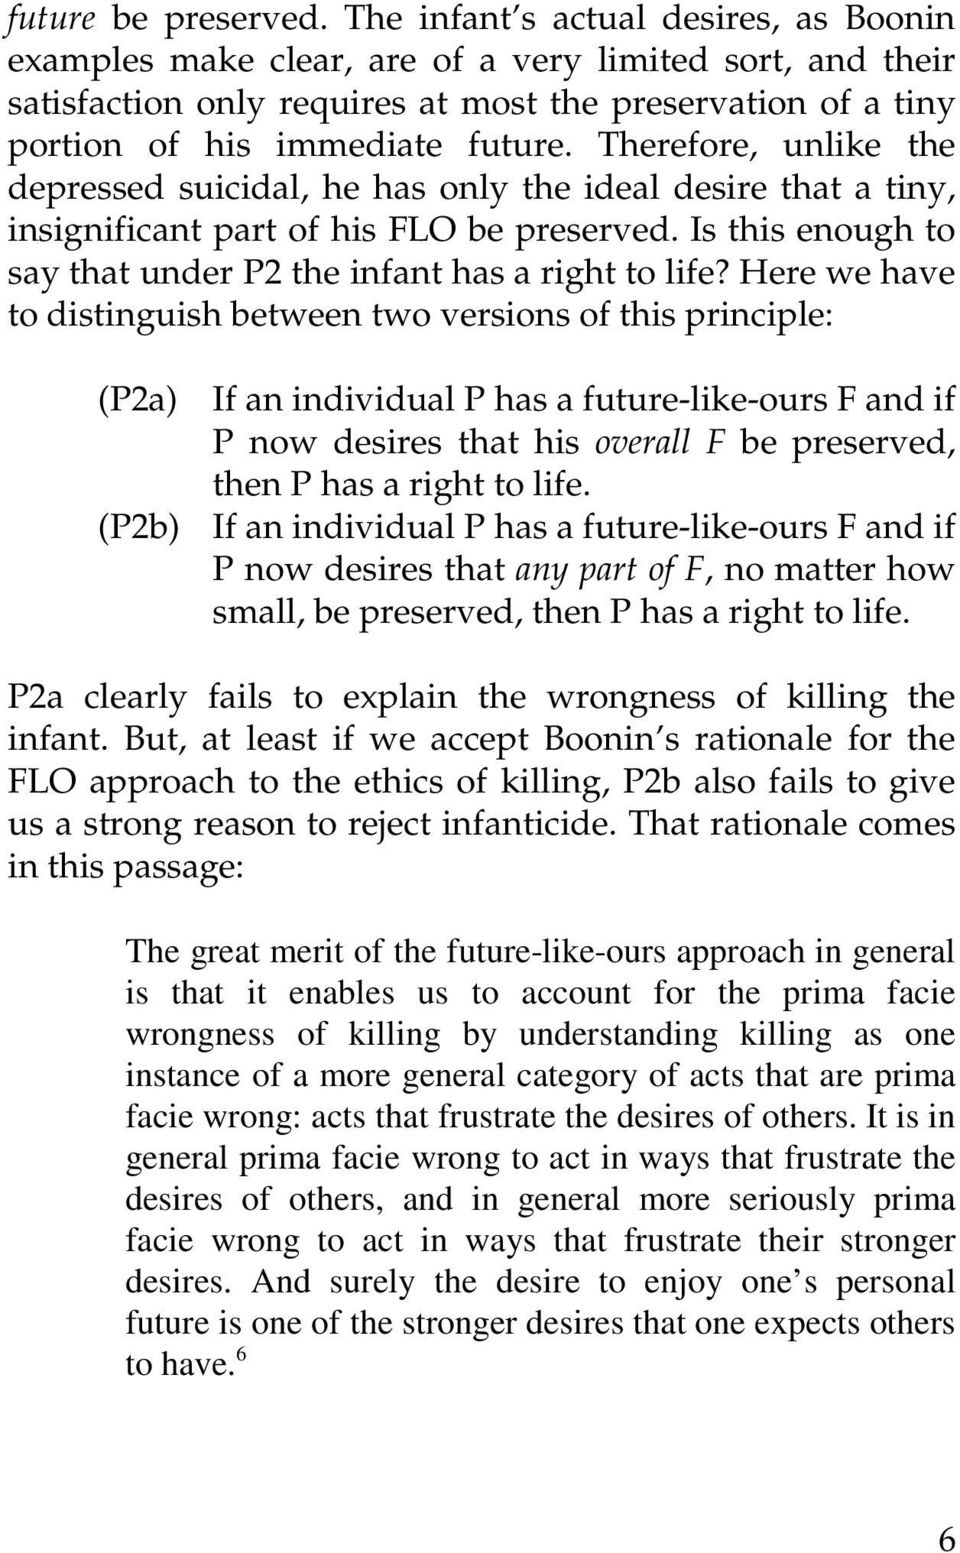 Therefore, unlike the depressed suicidal, he has only the ideal desire that a tiny, insignificant part of his FLO be preserved. Is this enough to say that under P2 the infant has a right to life?